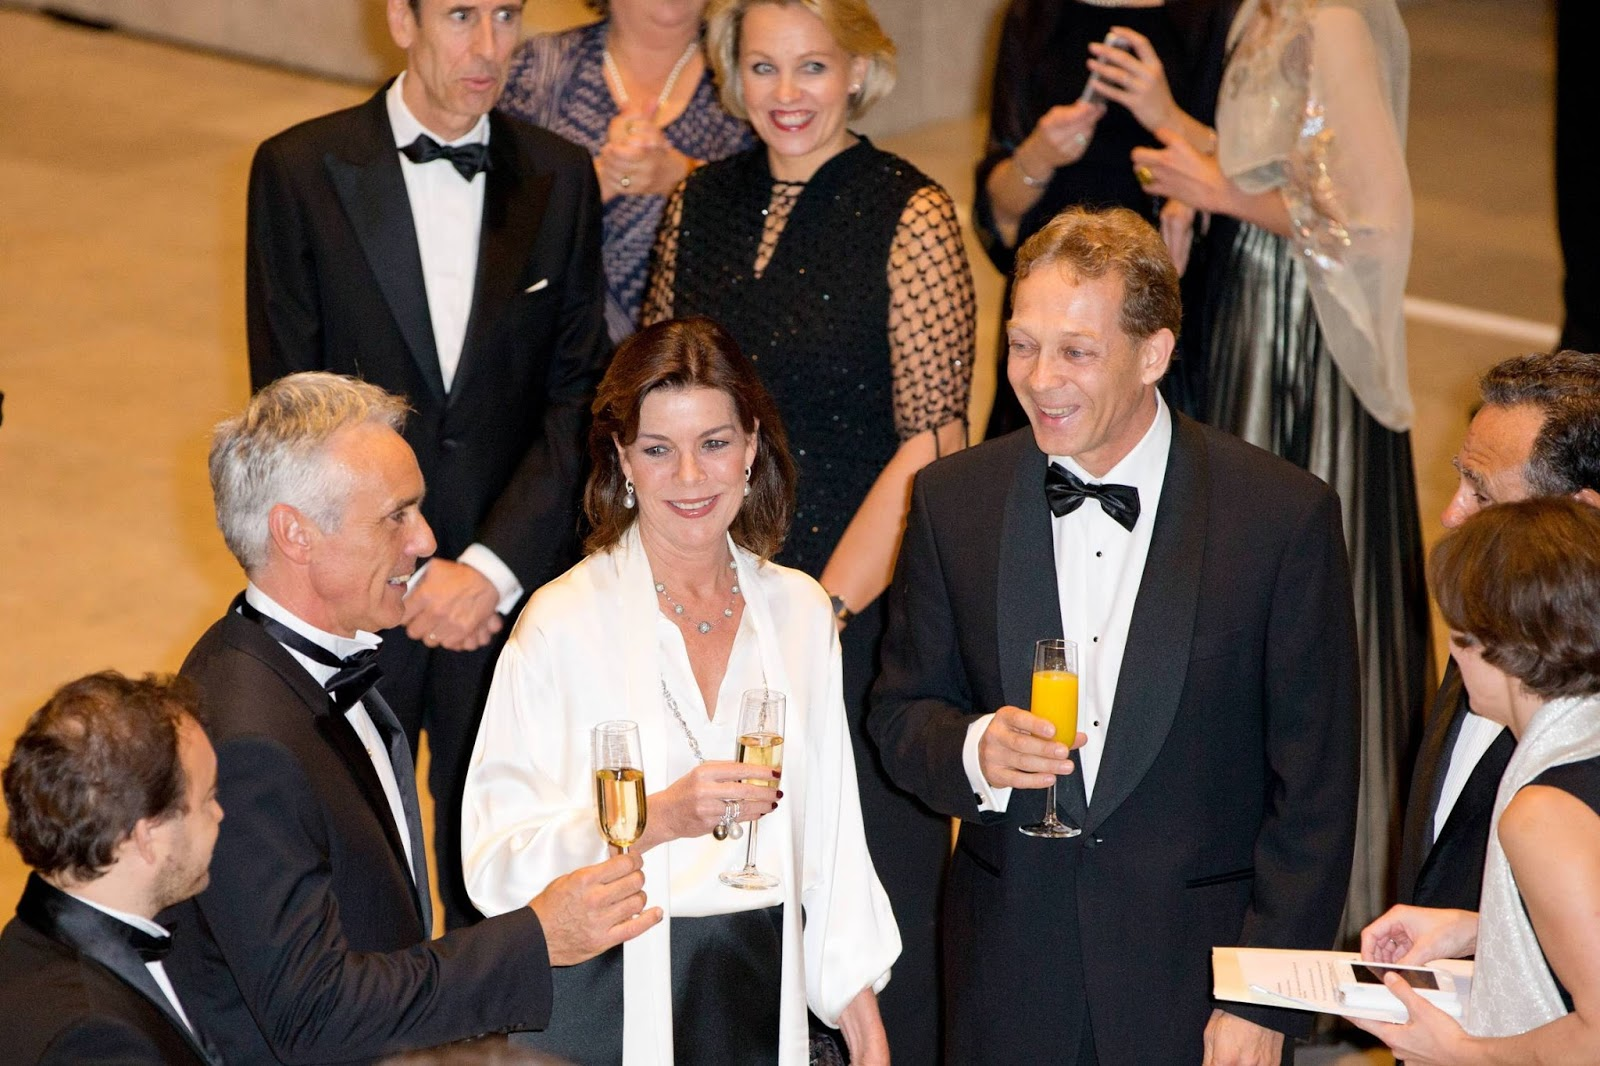 Princess Caroline of Monaco attends a charity evening at the Rijksmuseum in Amsterdam